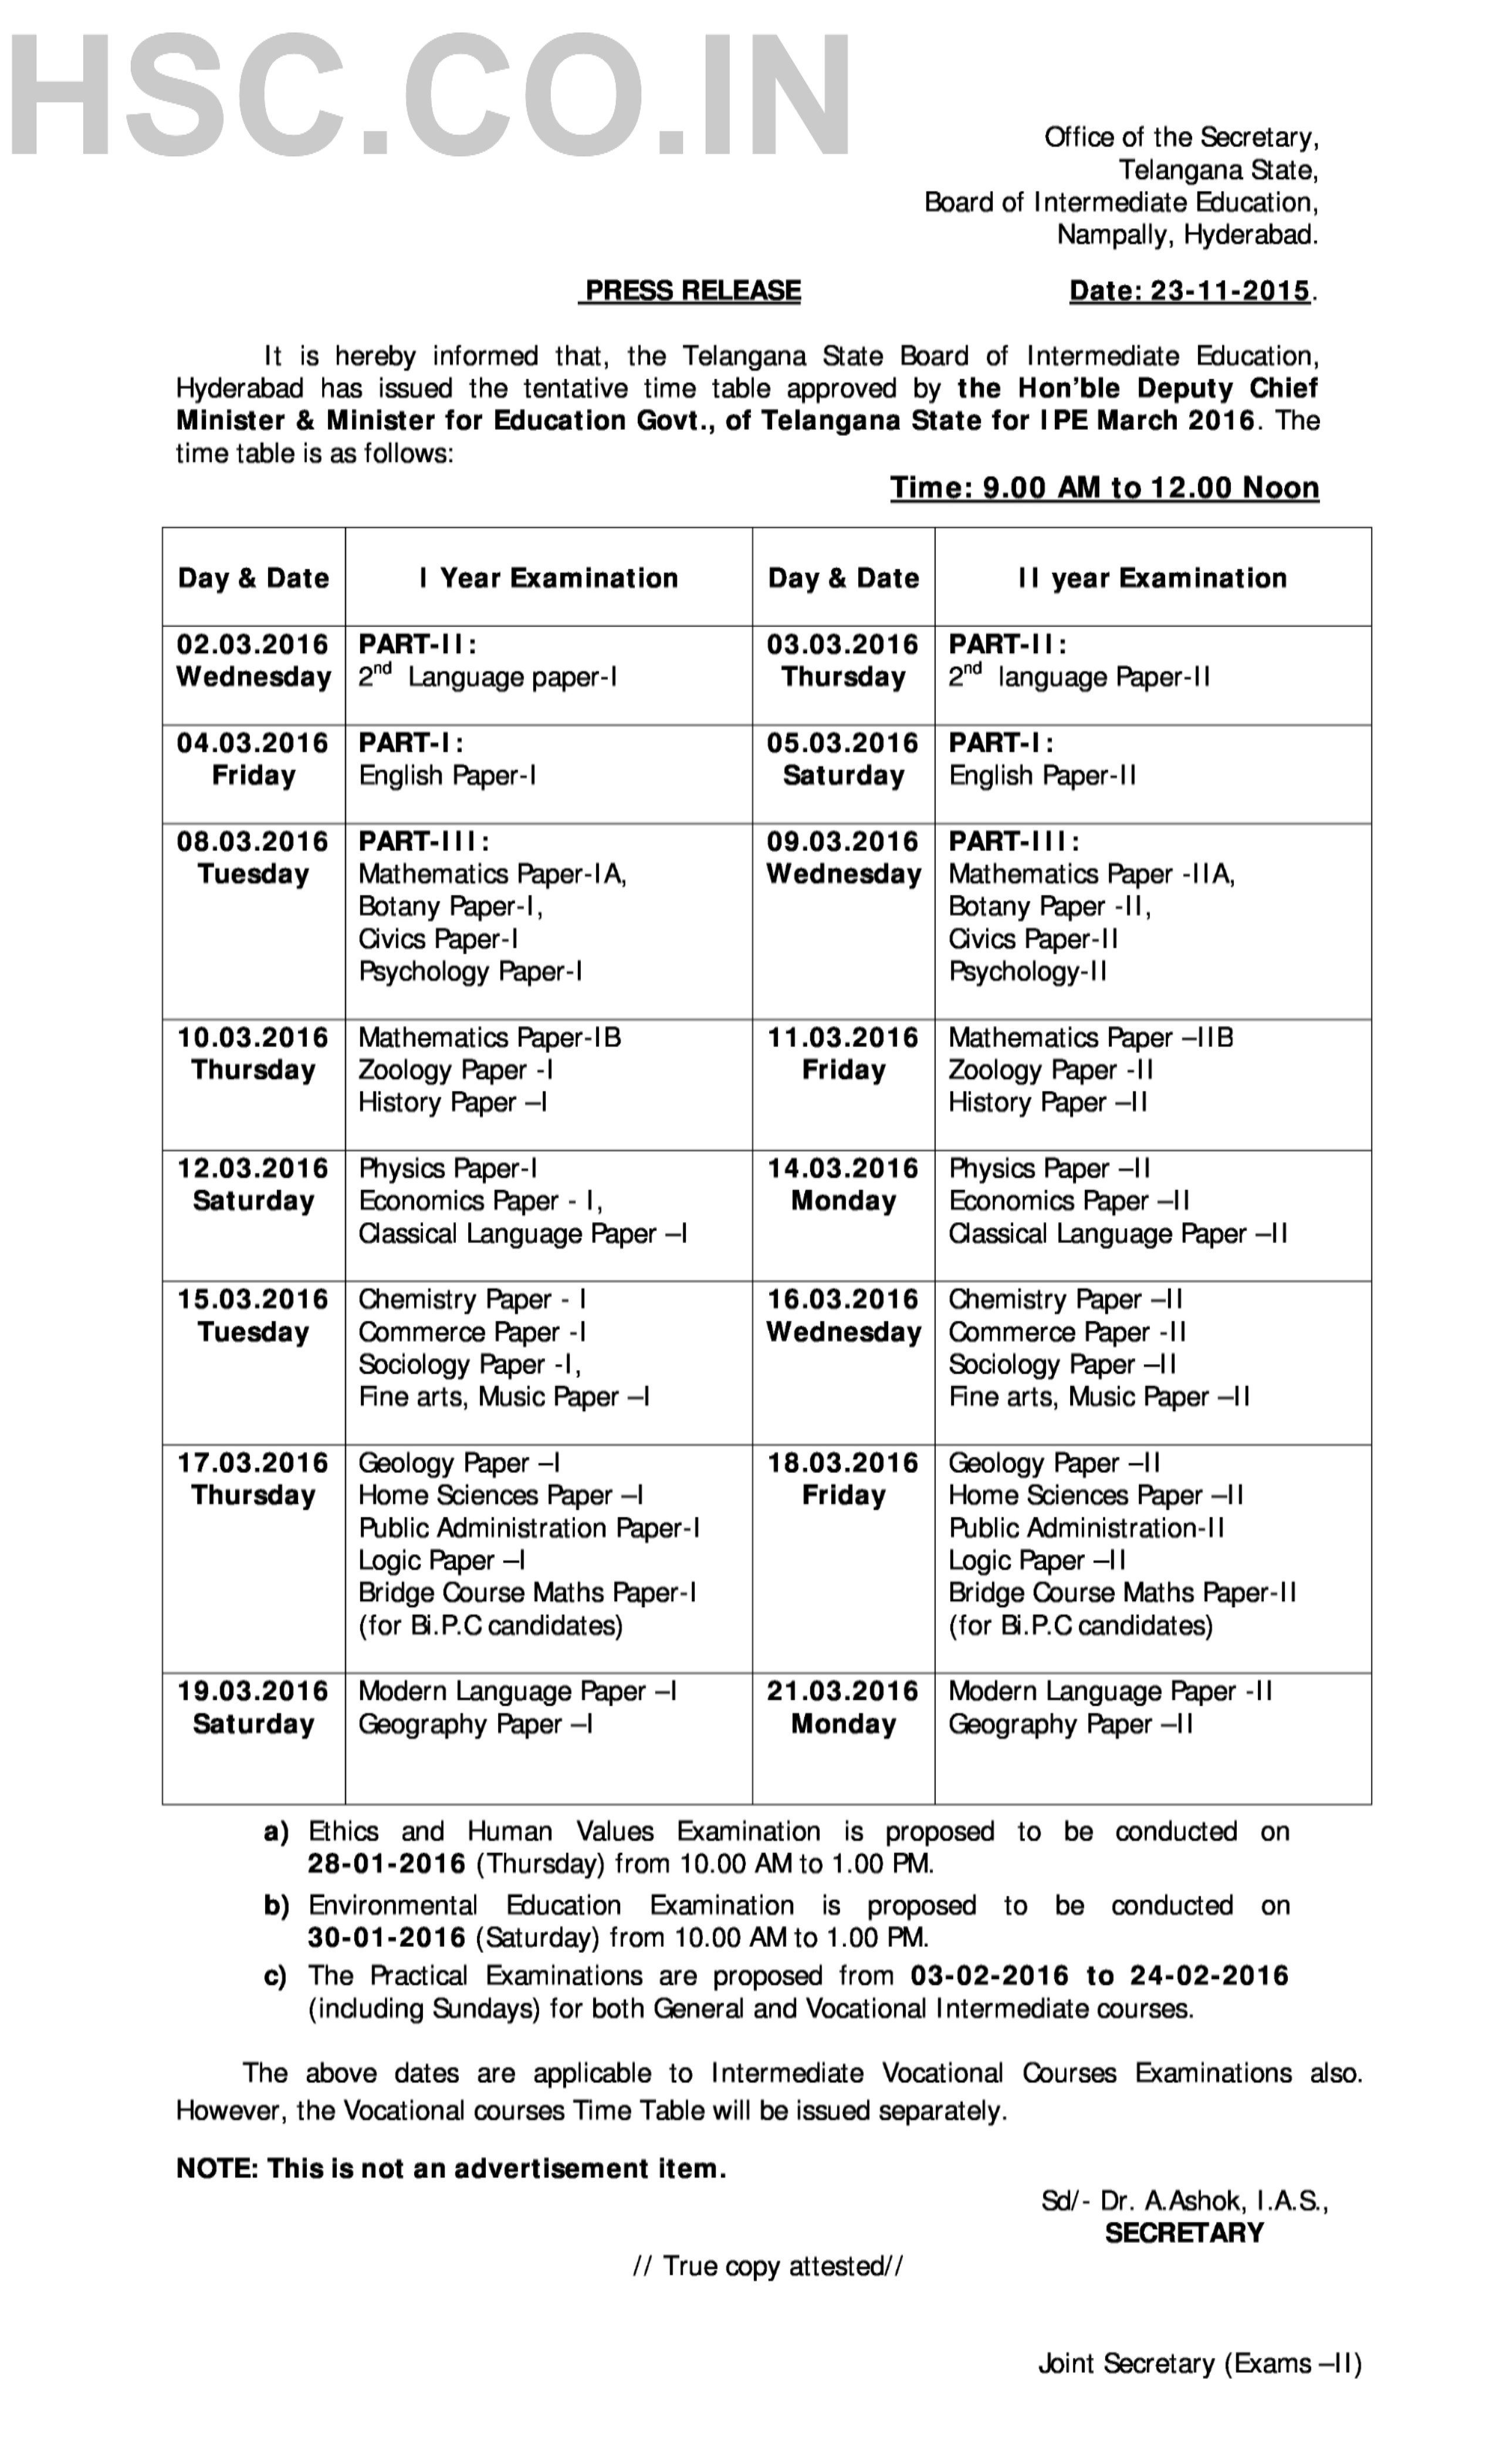 Telengana march 2016 class 12th time table